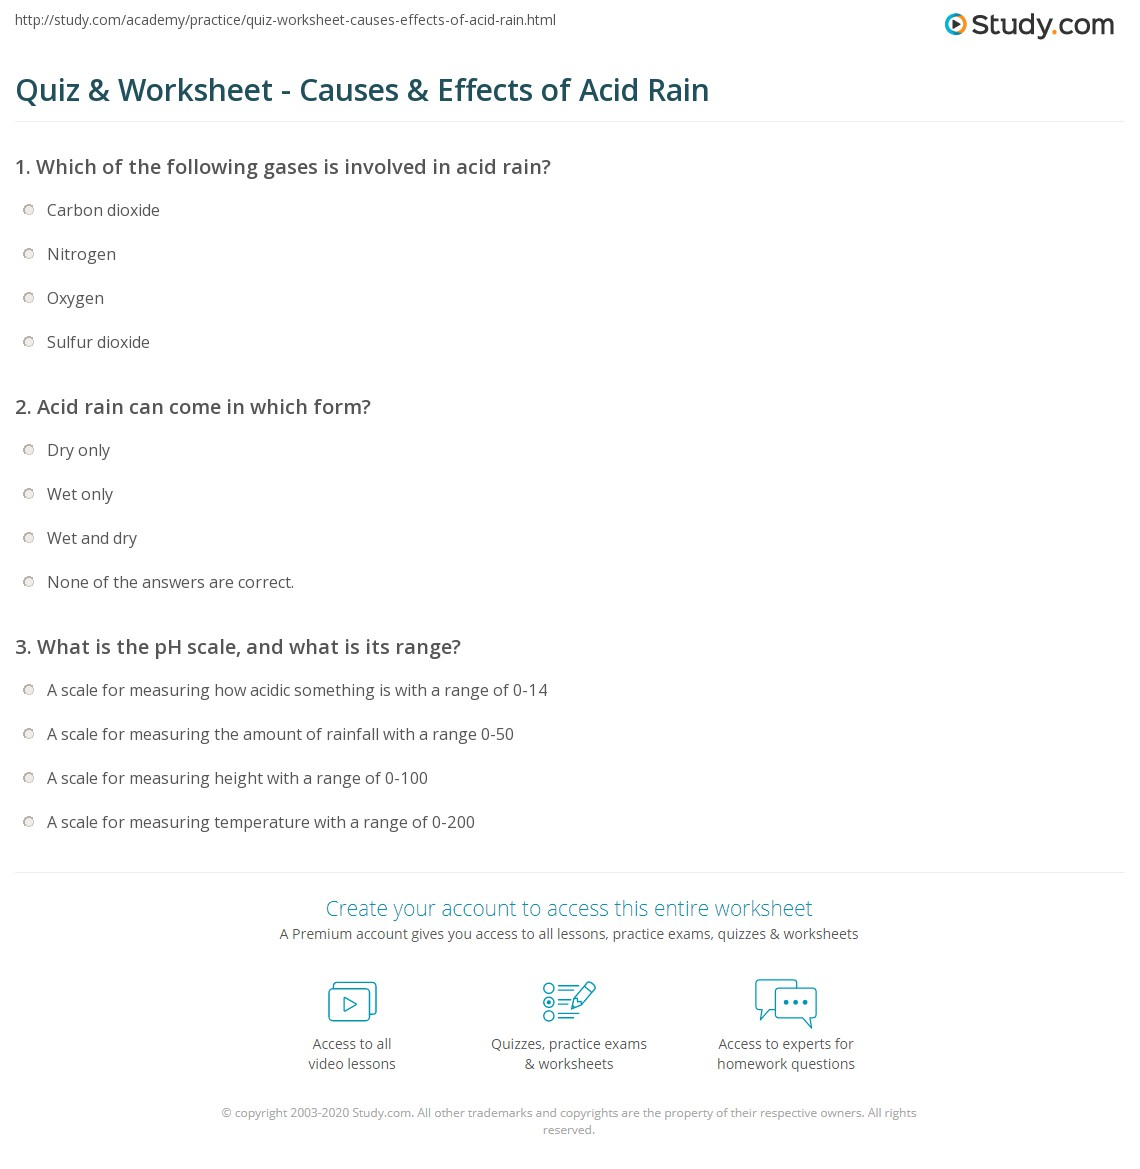 quiz & worksheet - causes & effects of acid rain | study